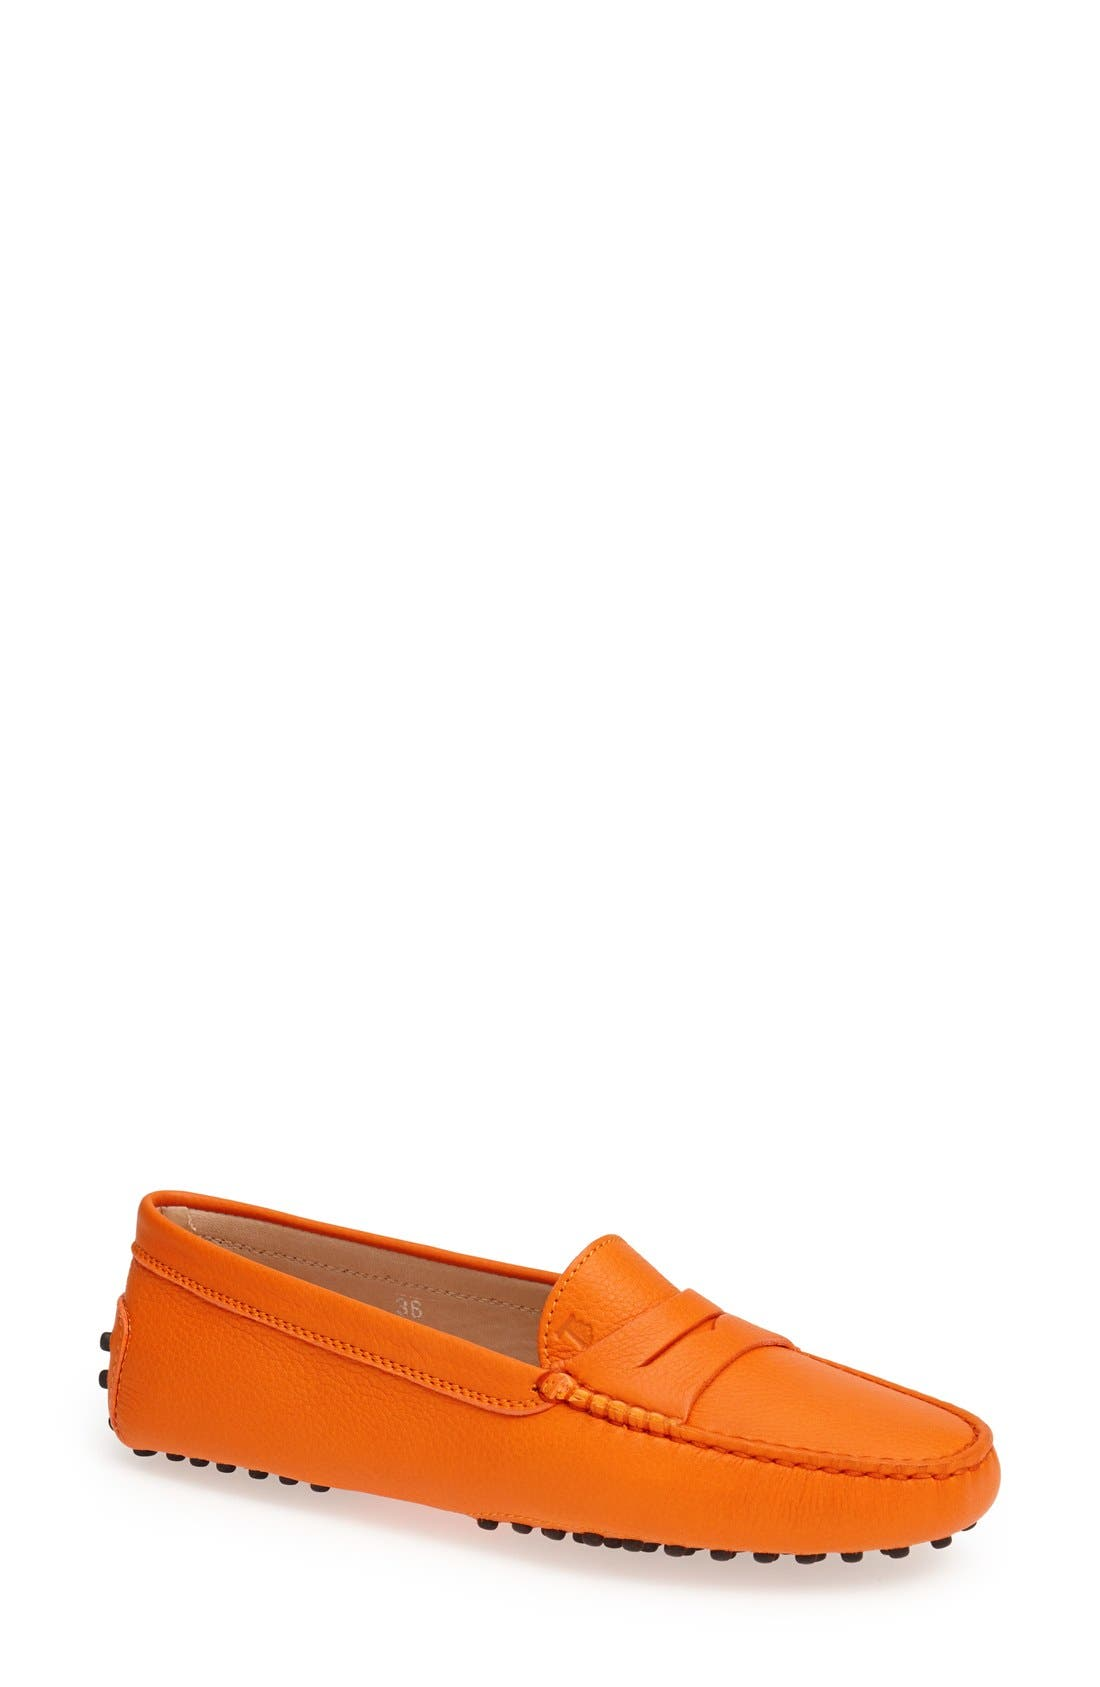 'Gommini' Driving Moccasin,                         Main,                         color, ORANGE